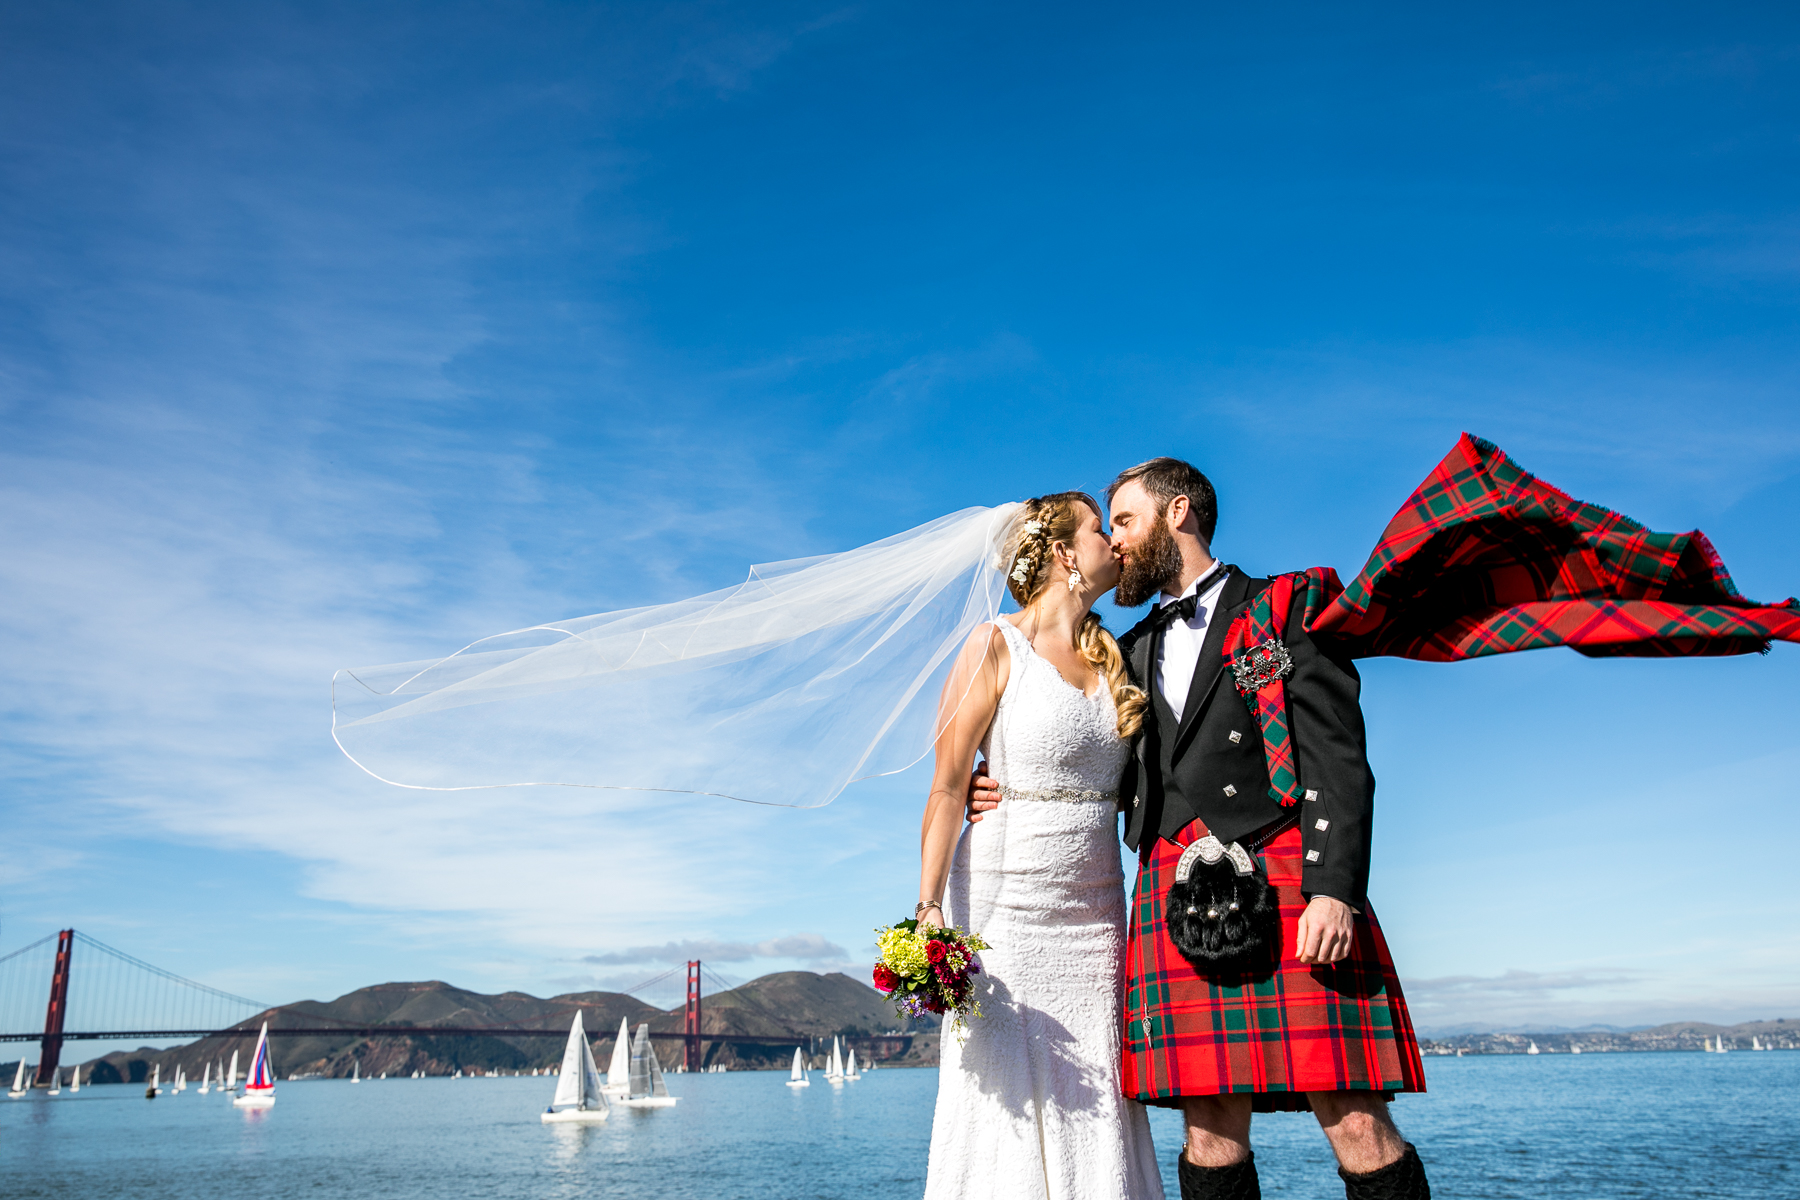 epic wind catches bride and groom veil scottish golden gate bridge san francisco wedding portrait